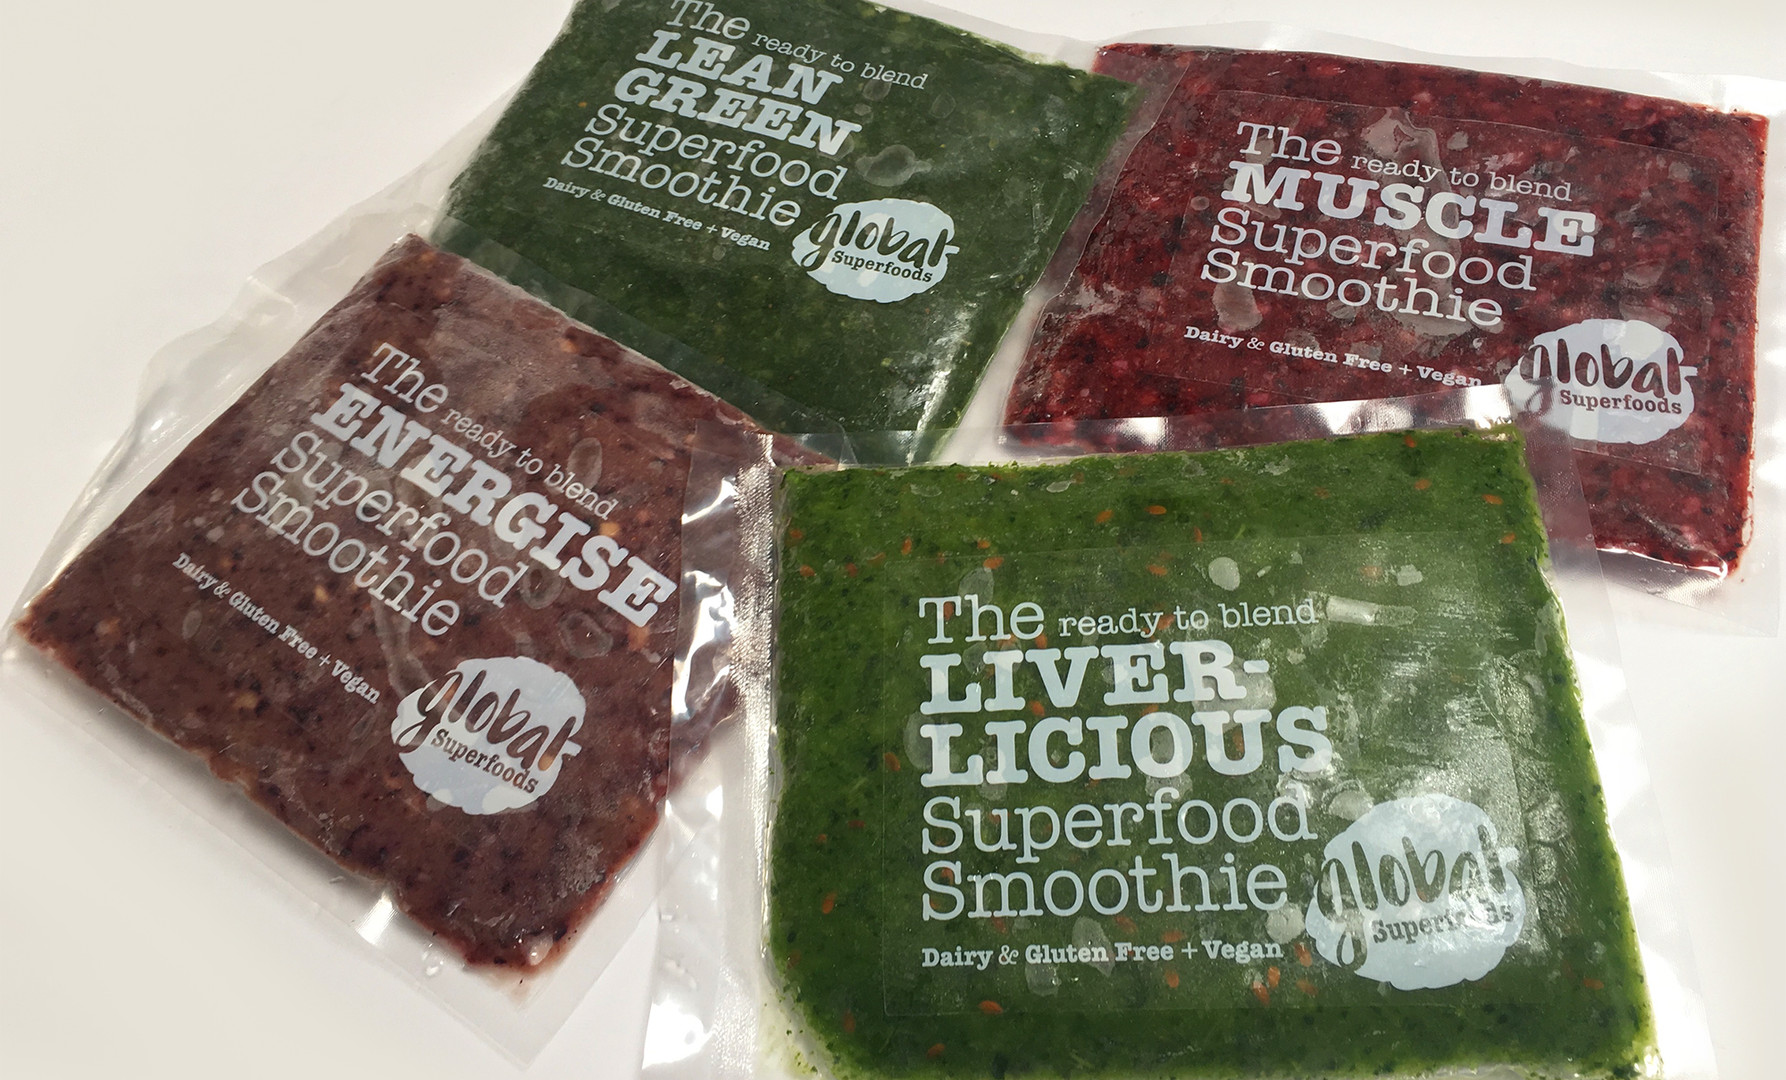 The Global Superfood Multi Pack